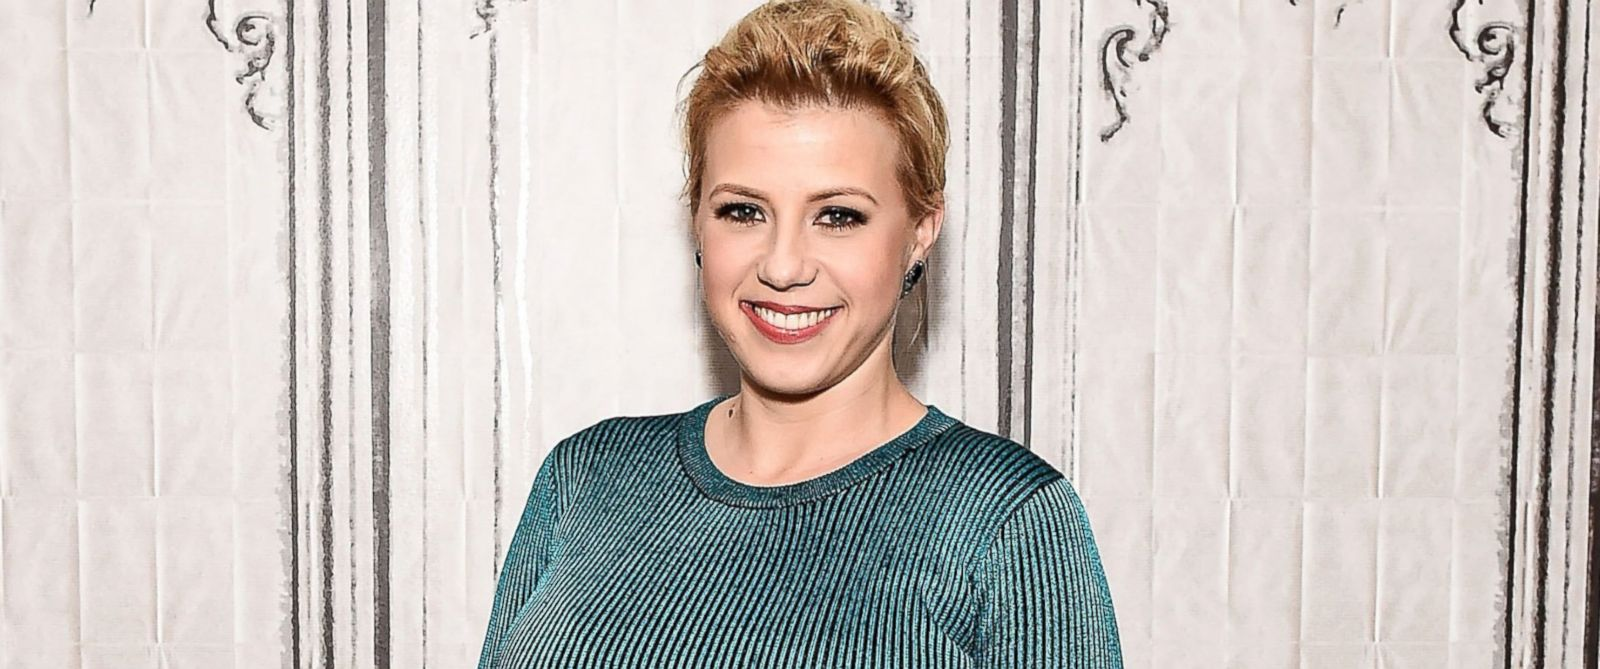 """PHOTO: Jodie Sweetin attends the AOL Build Speakers Series to discuss """"Fuller House"""" at AOL Studios In New York City, Feb. 25, 2016."""